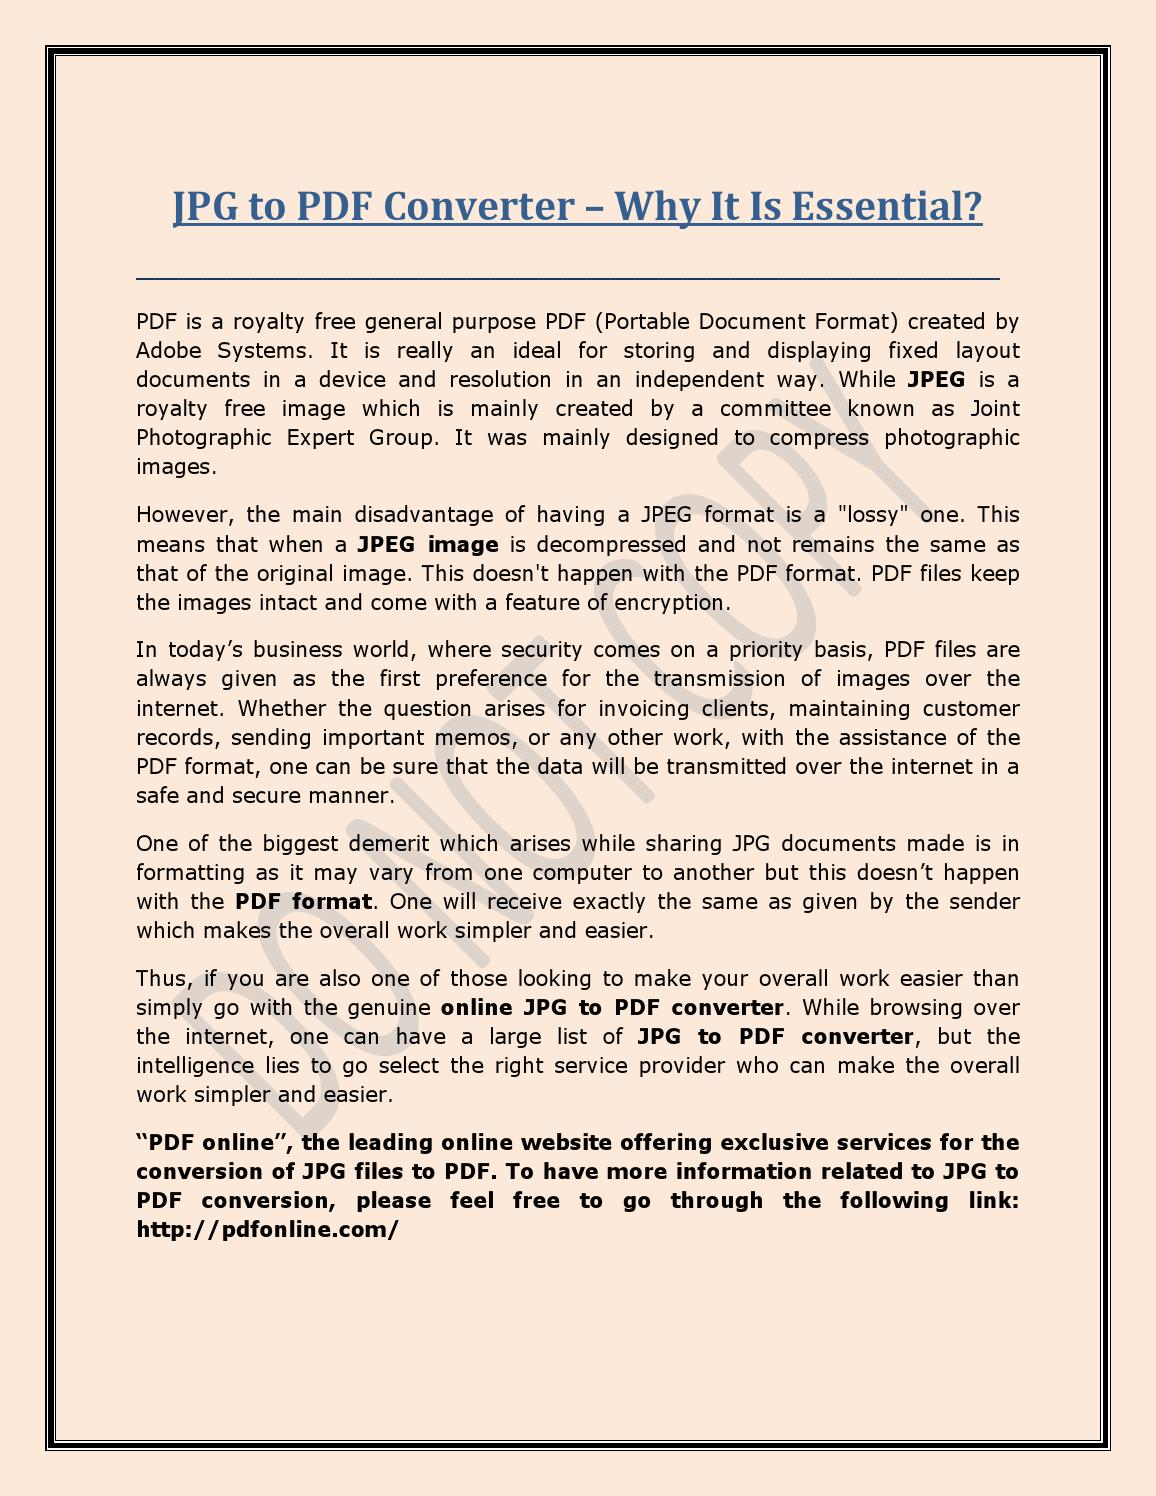 Jpg to pdf converter – why it is essential by Maria Watson